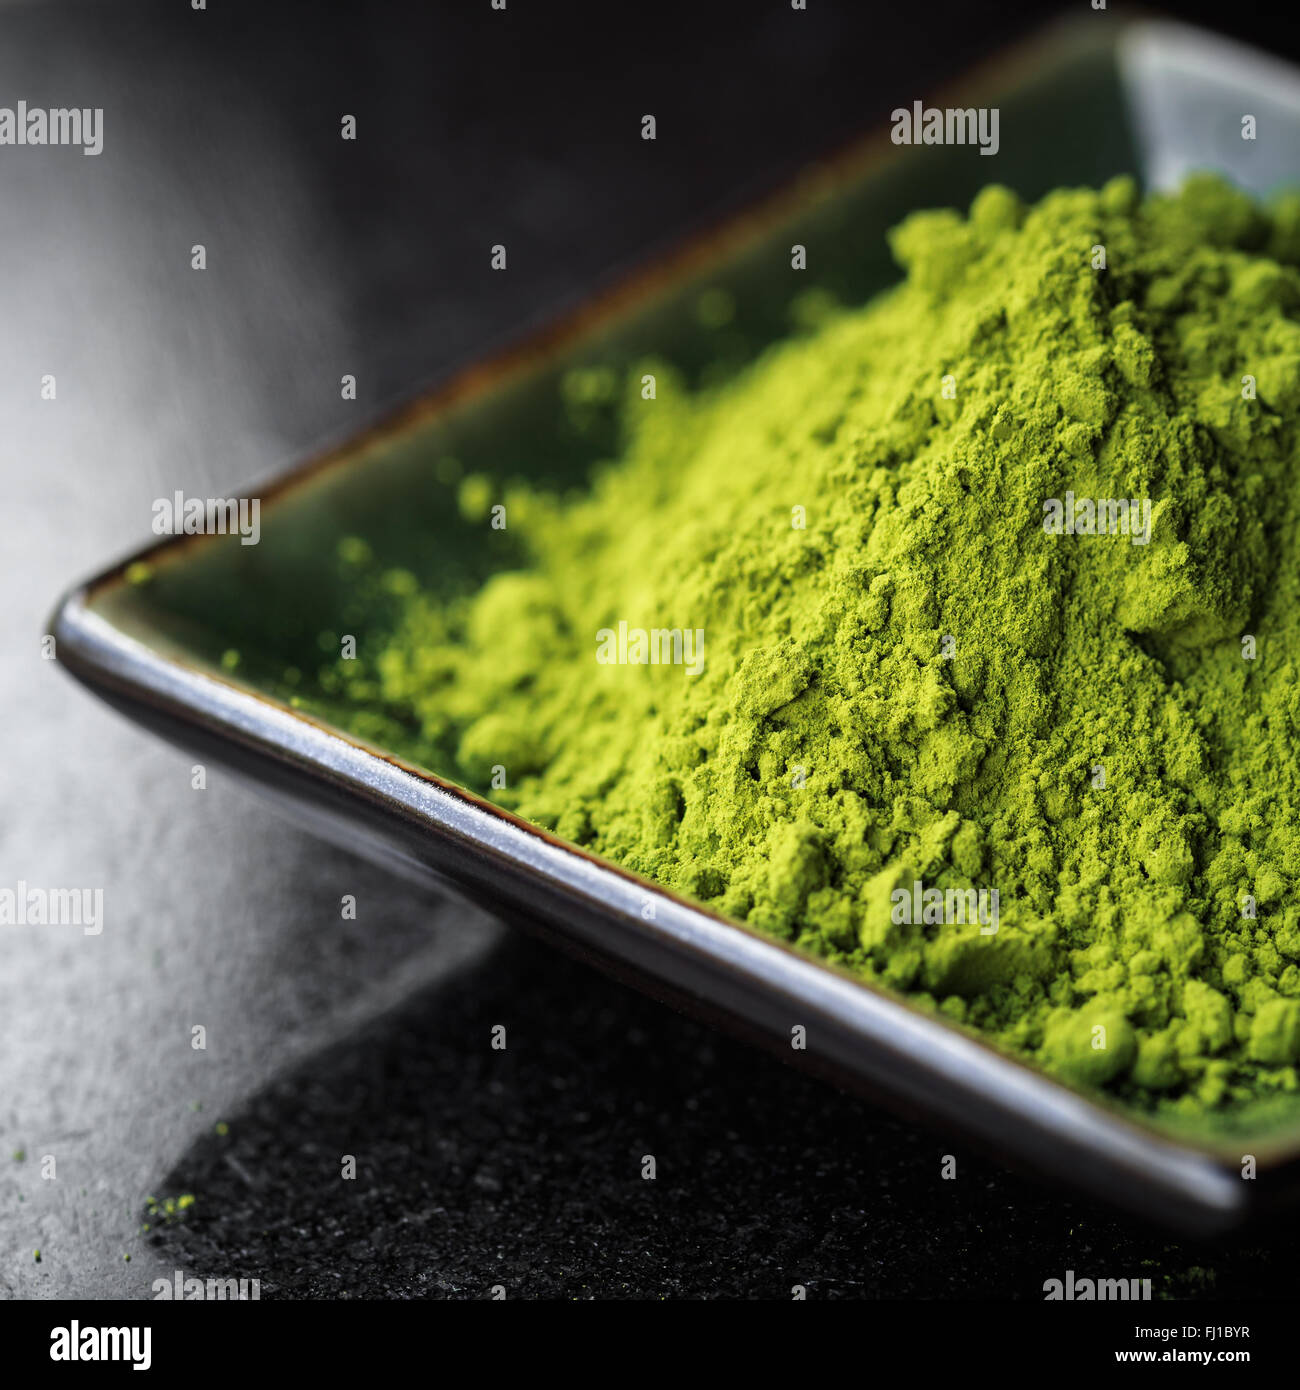 Matcha tea in a bowl - Stock Image